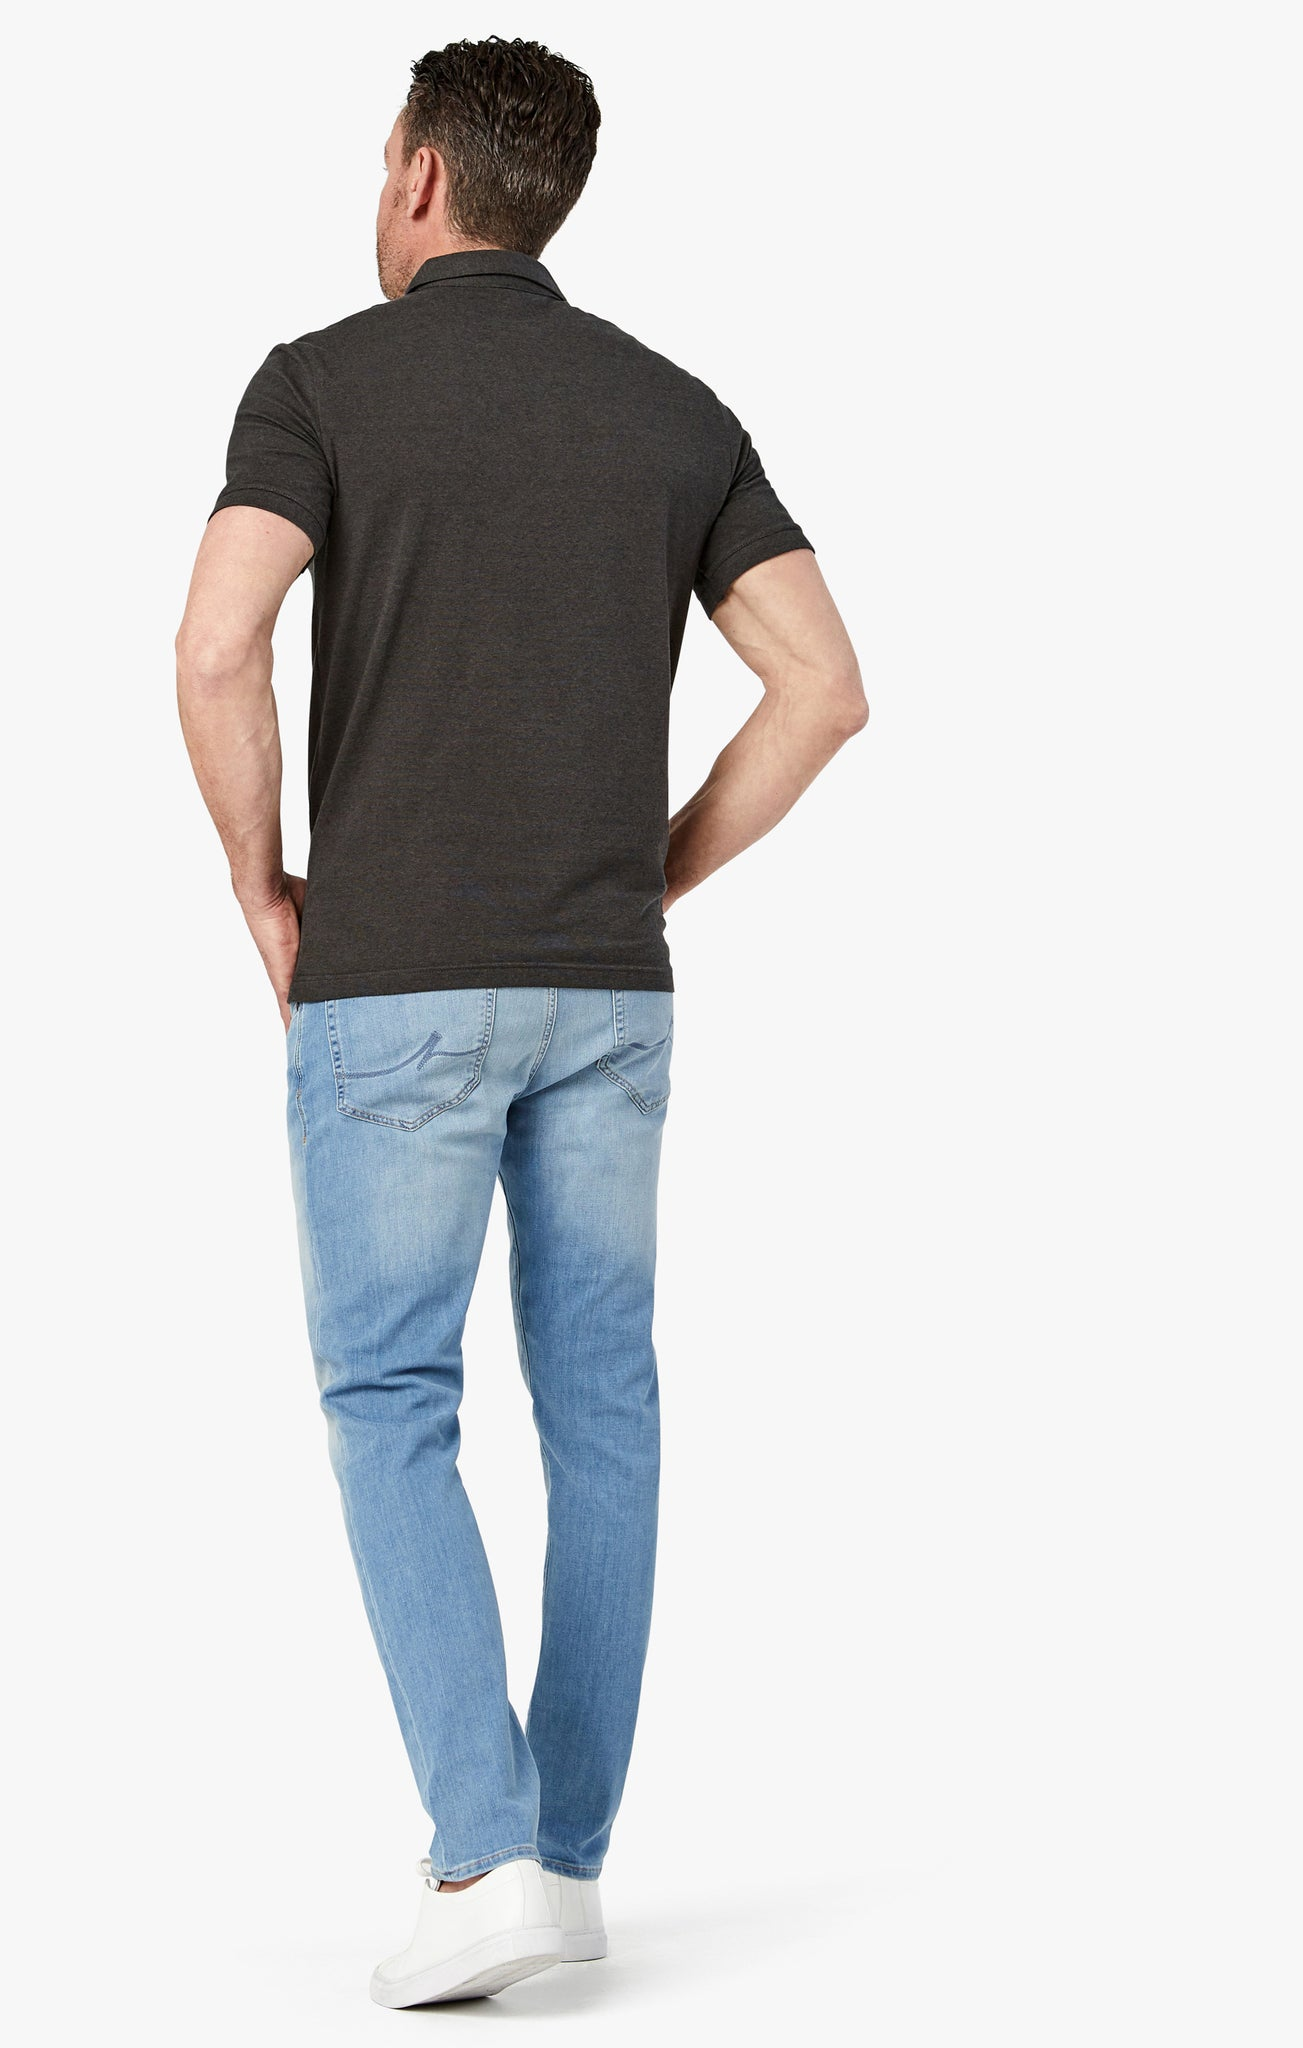 Calm Skinny Leg Jeans in Light Luxury